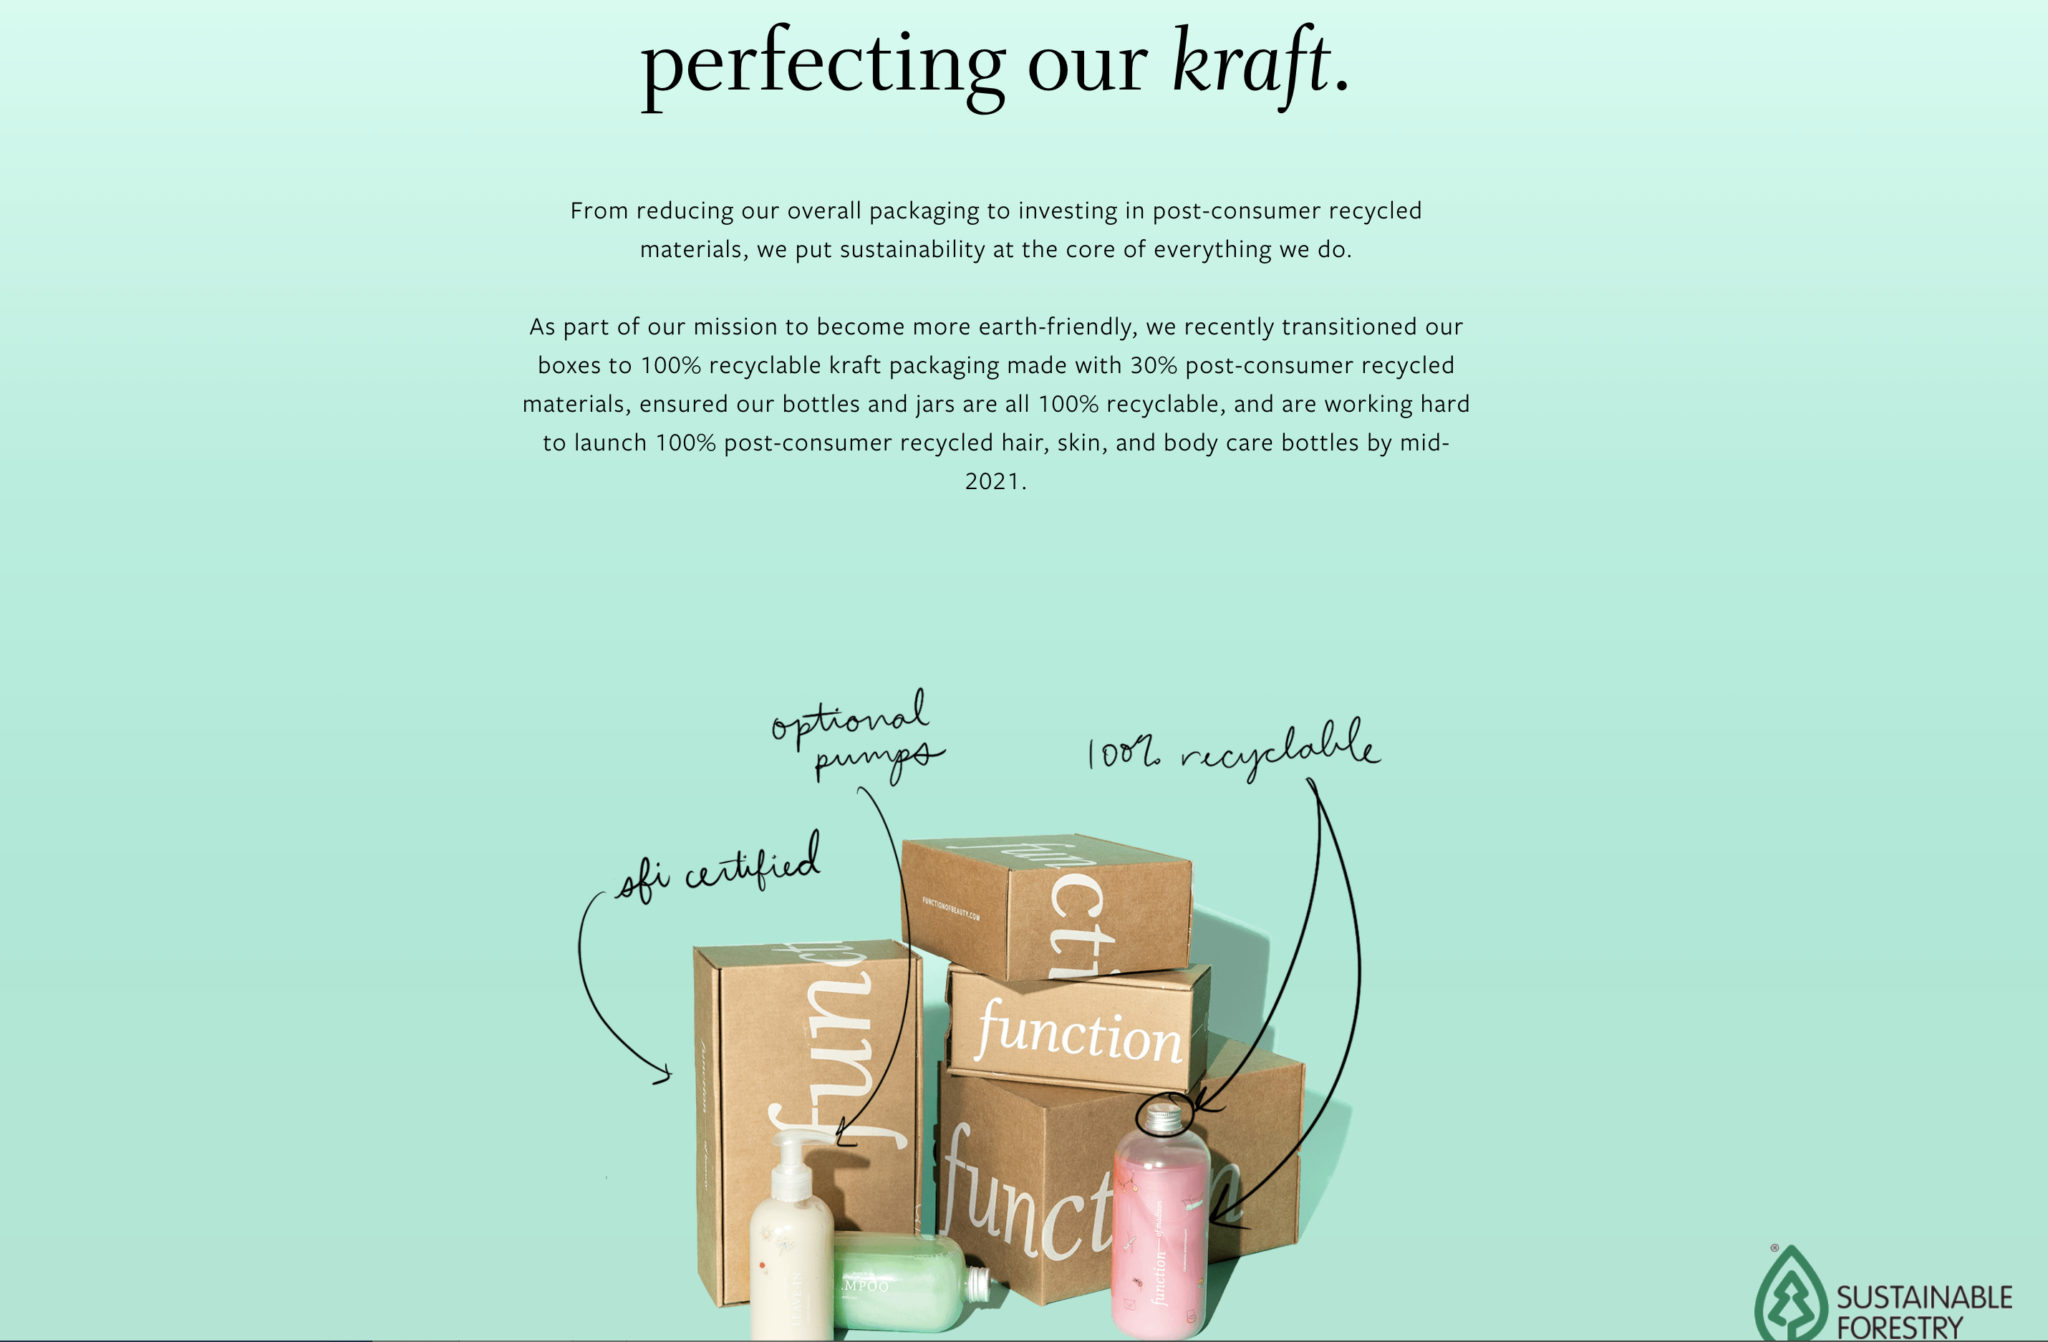 functionofbeauty sustainable practices